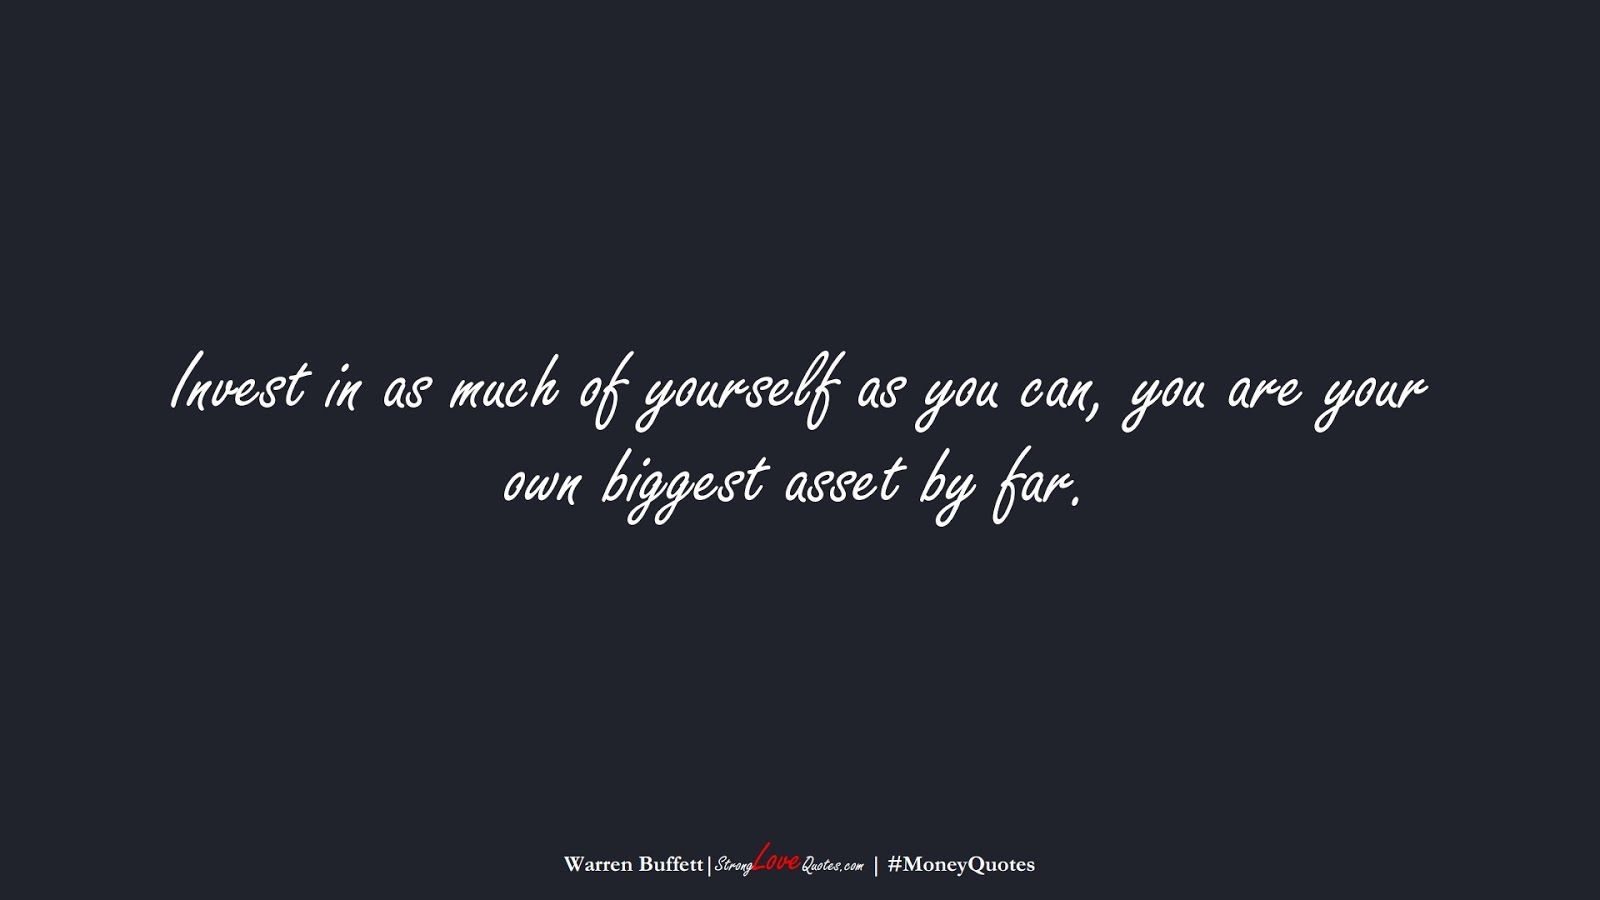 Invest in as much of yourself as you can, you are your own biggest asset by far. (Warren Buffett);  #MoneyQuotes